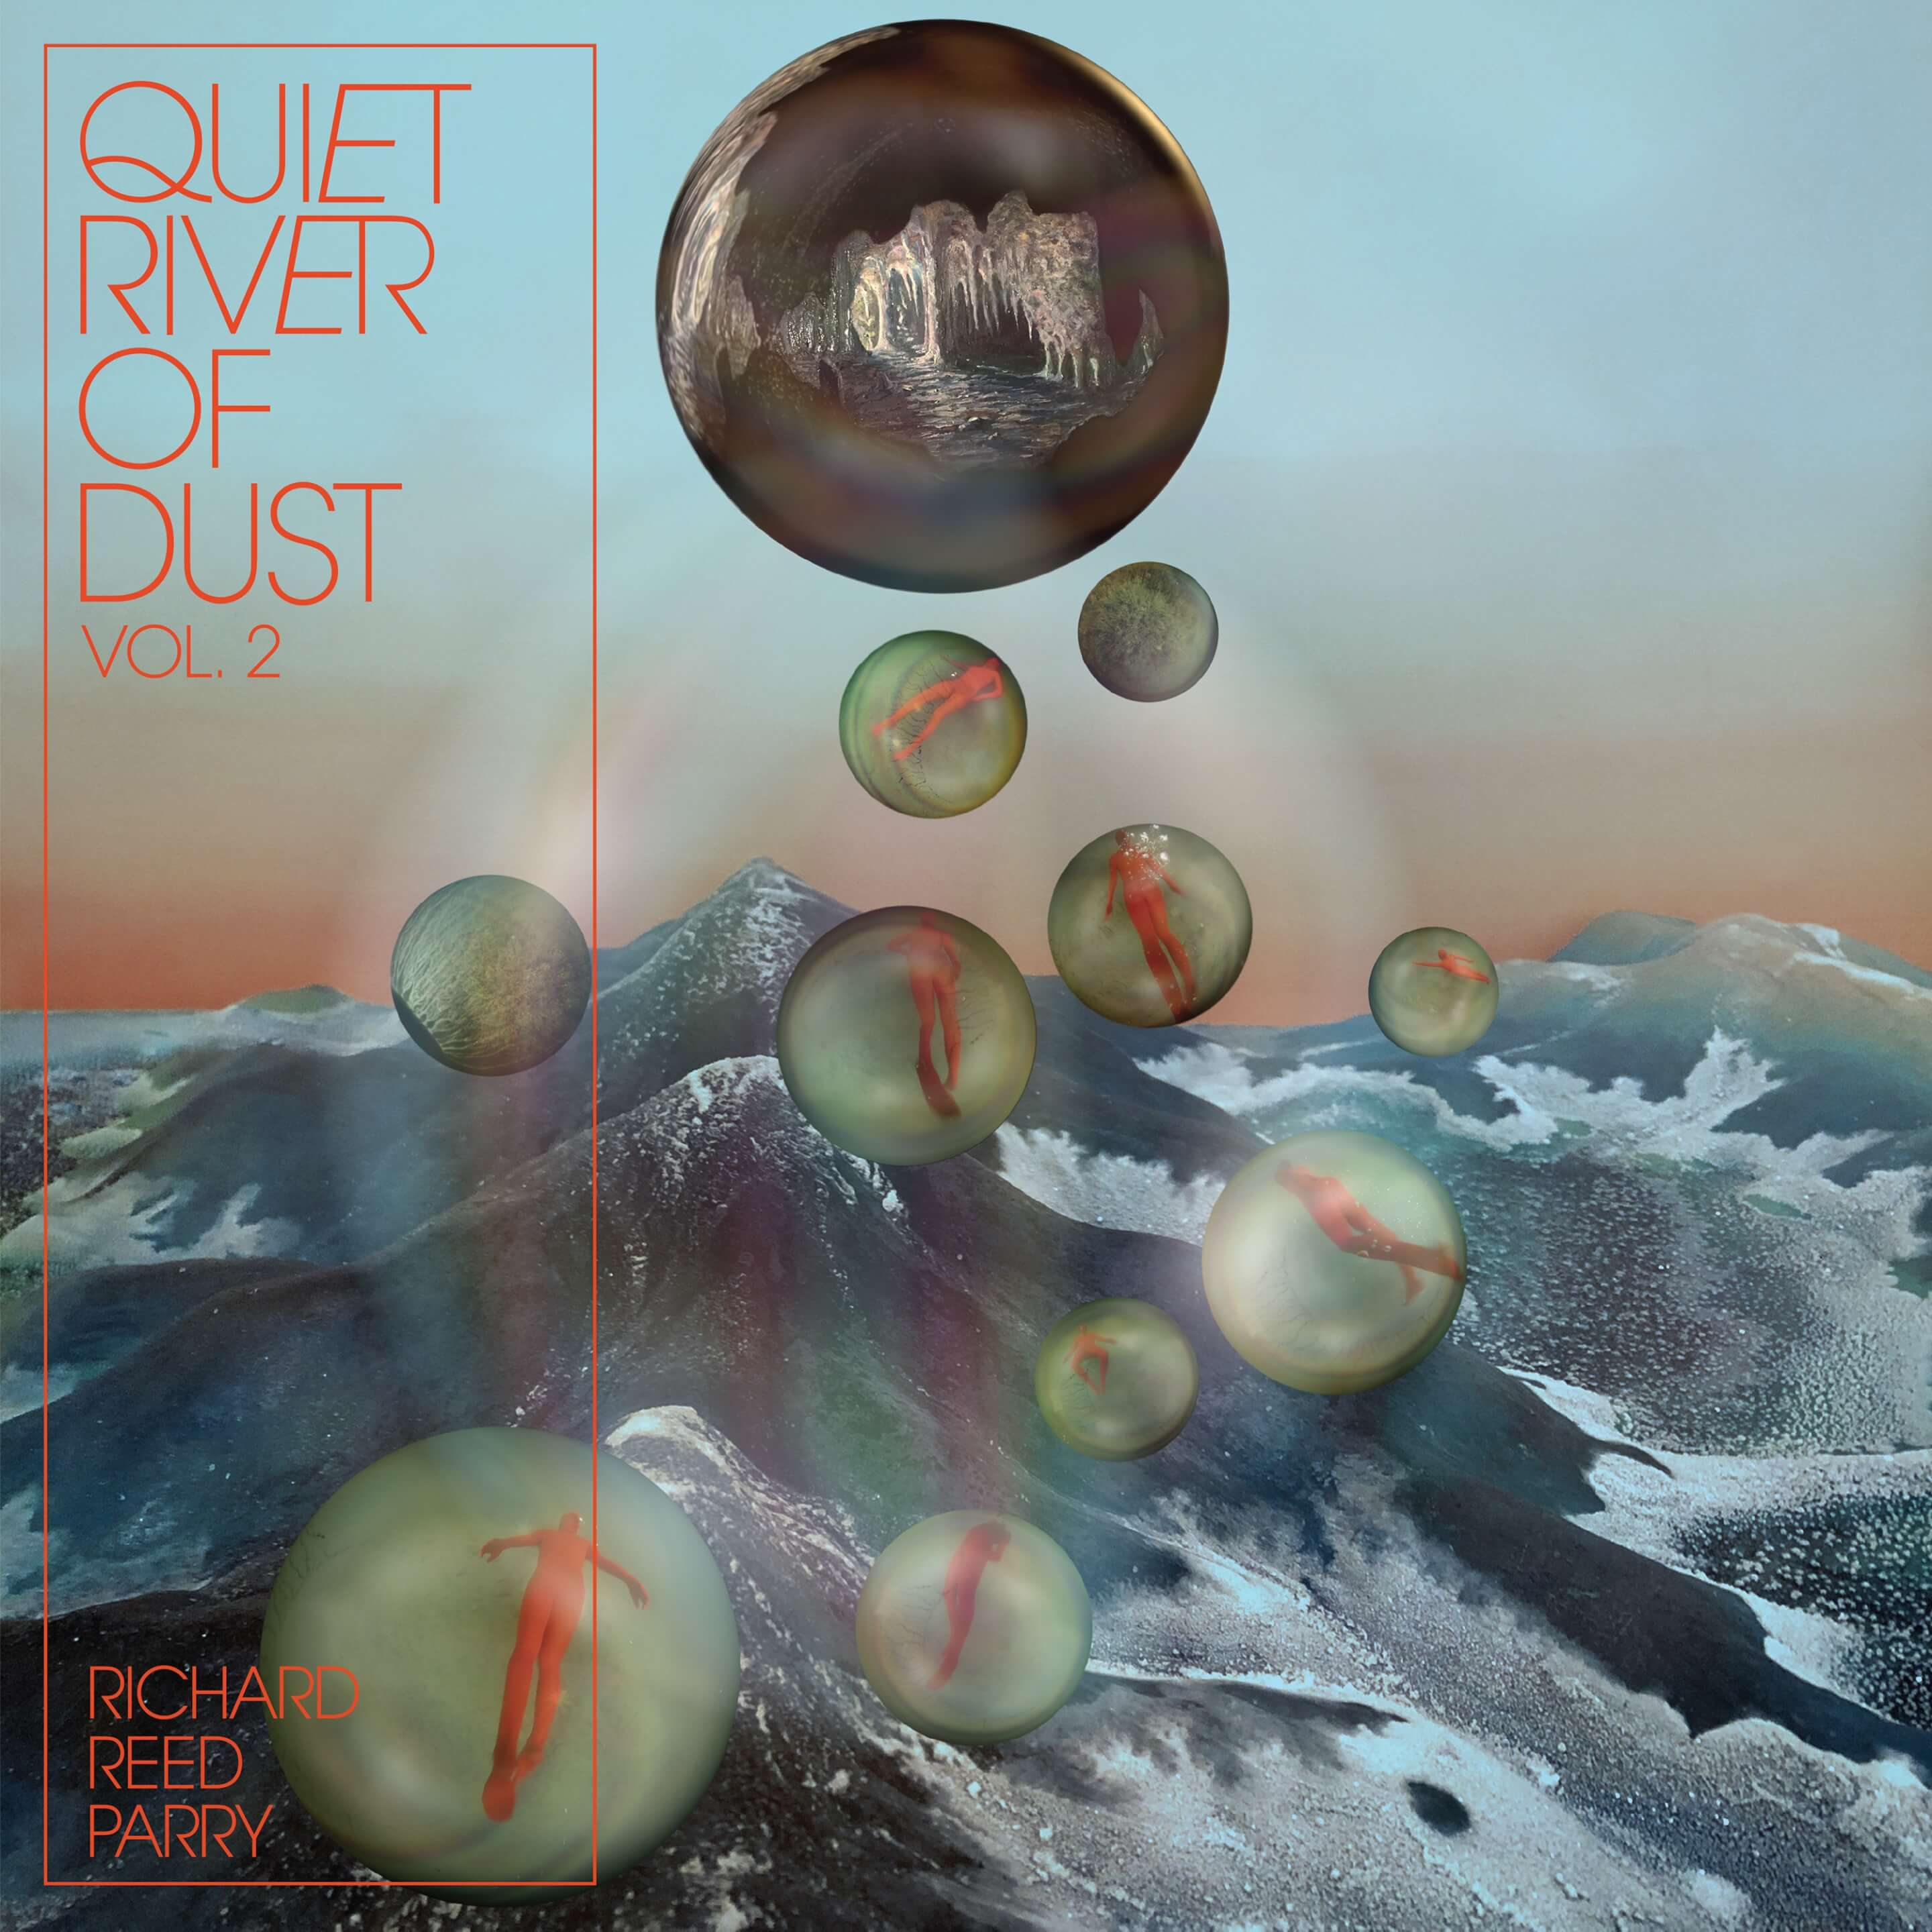 Quiet River of Dust, Vol. 2: That Side of the River - Richard Reed Parry